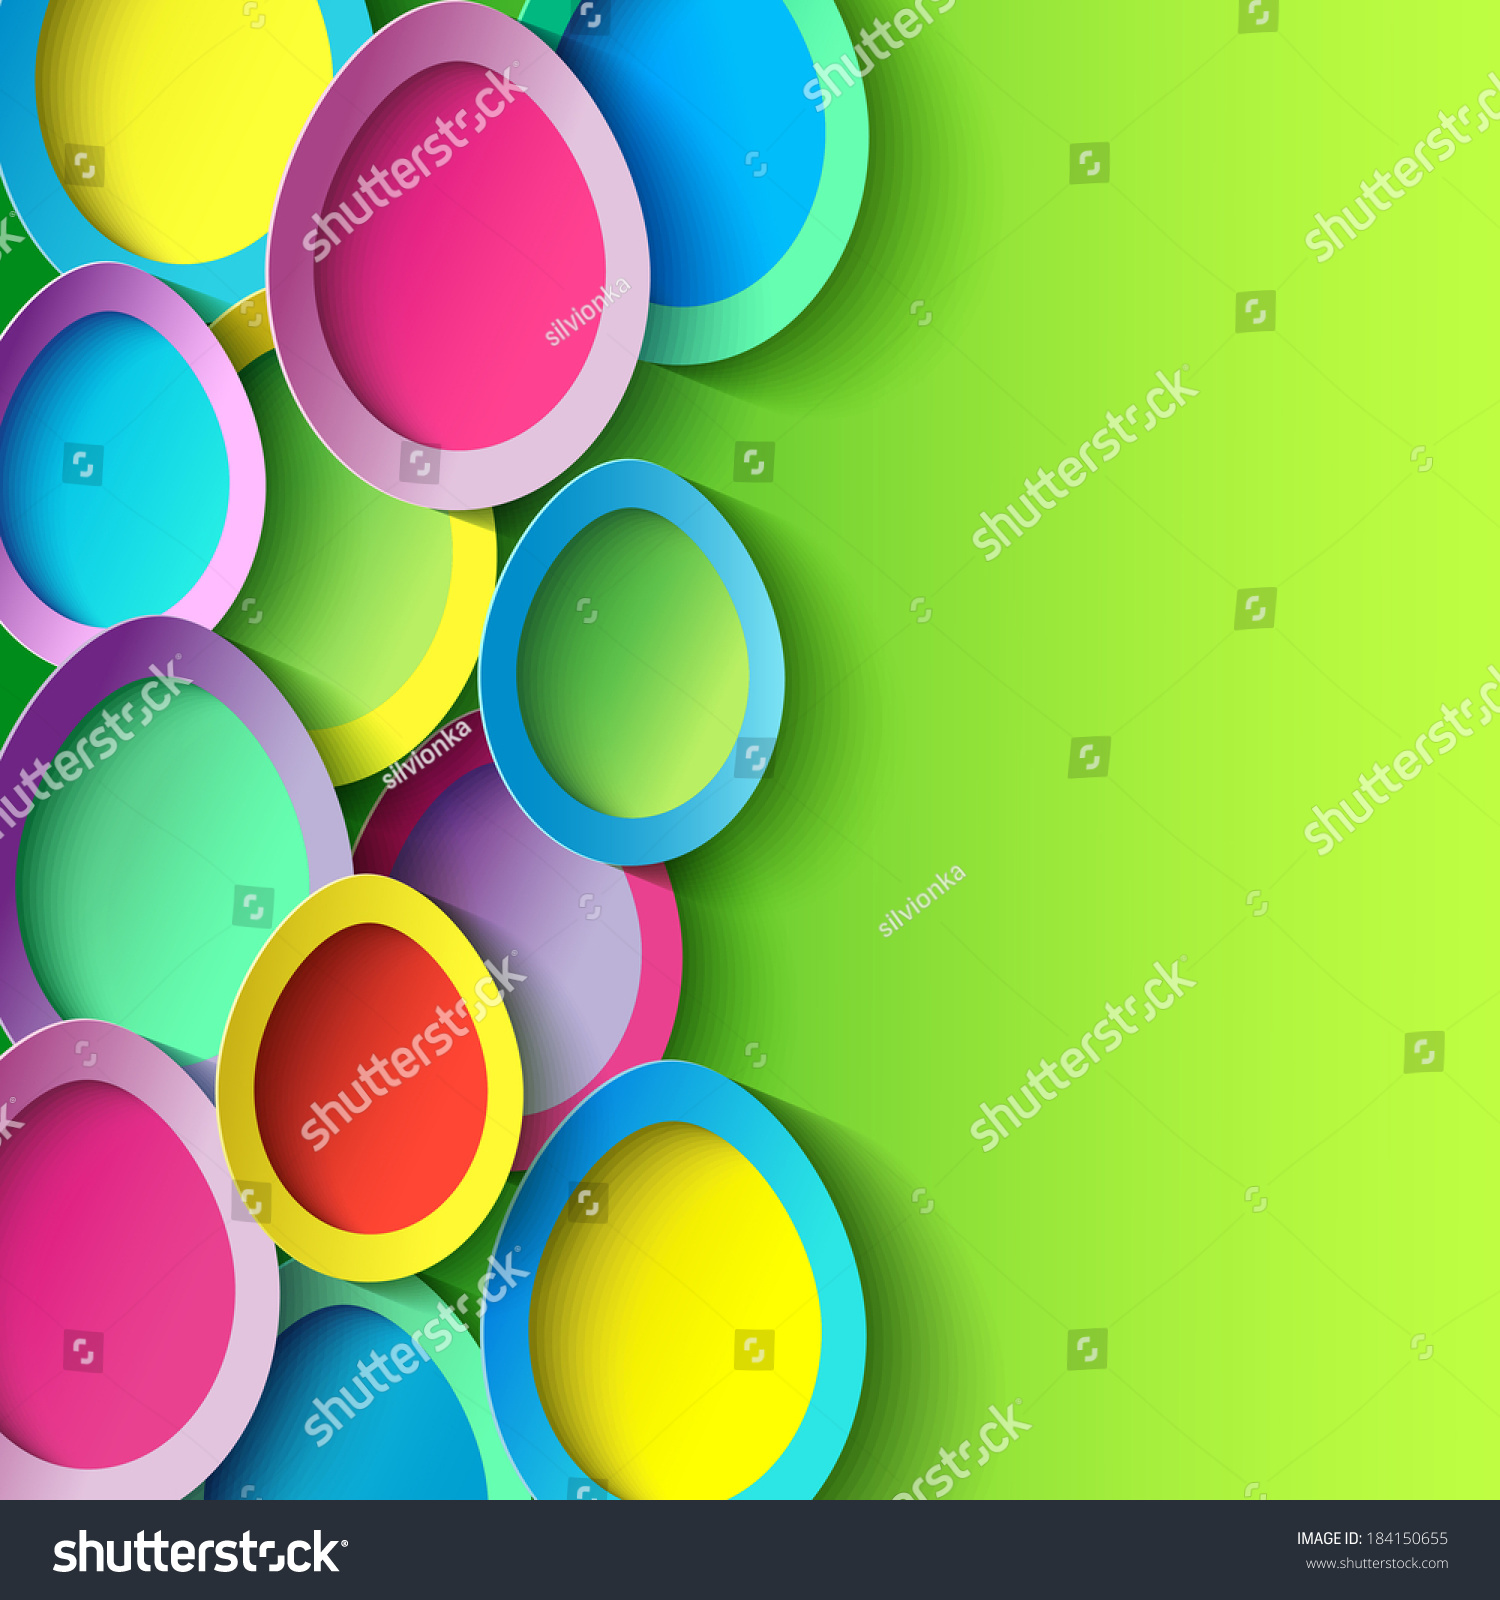 Abstract Trendy Background With Colorful 3d Cut Paper